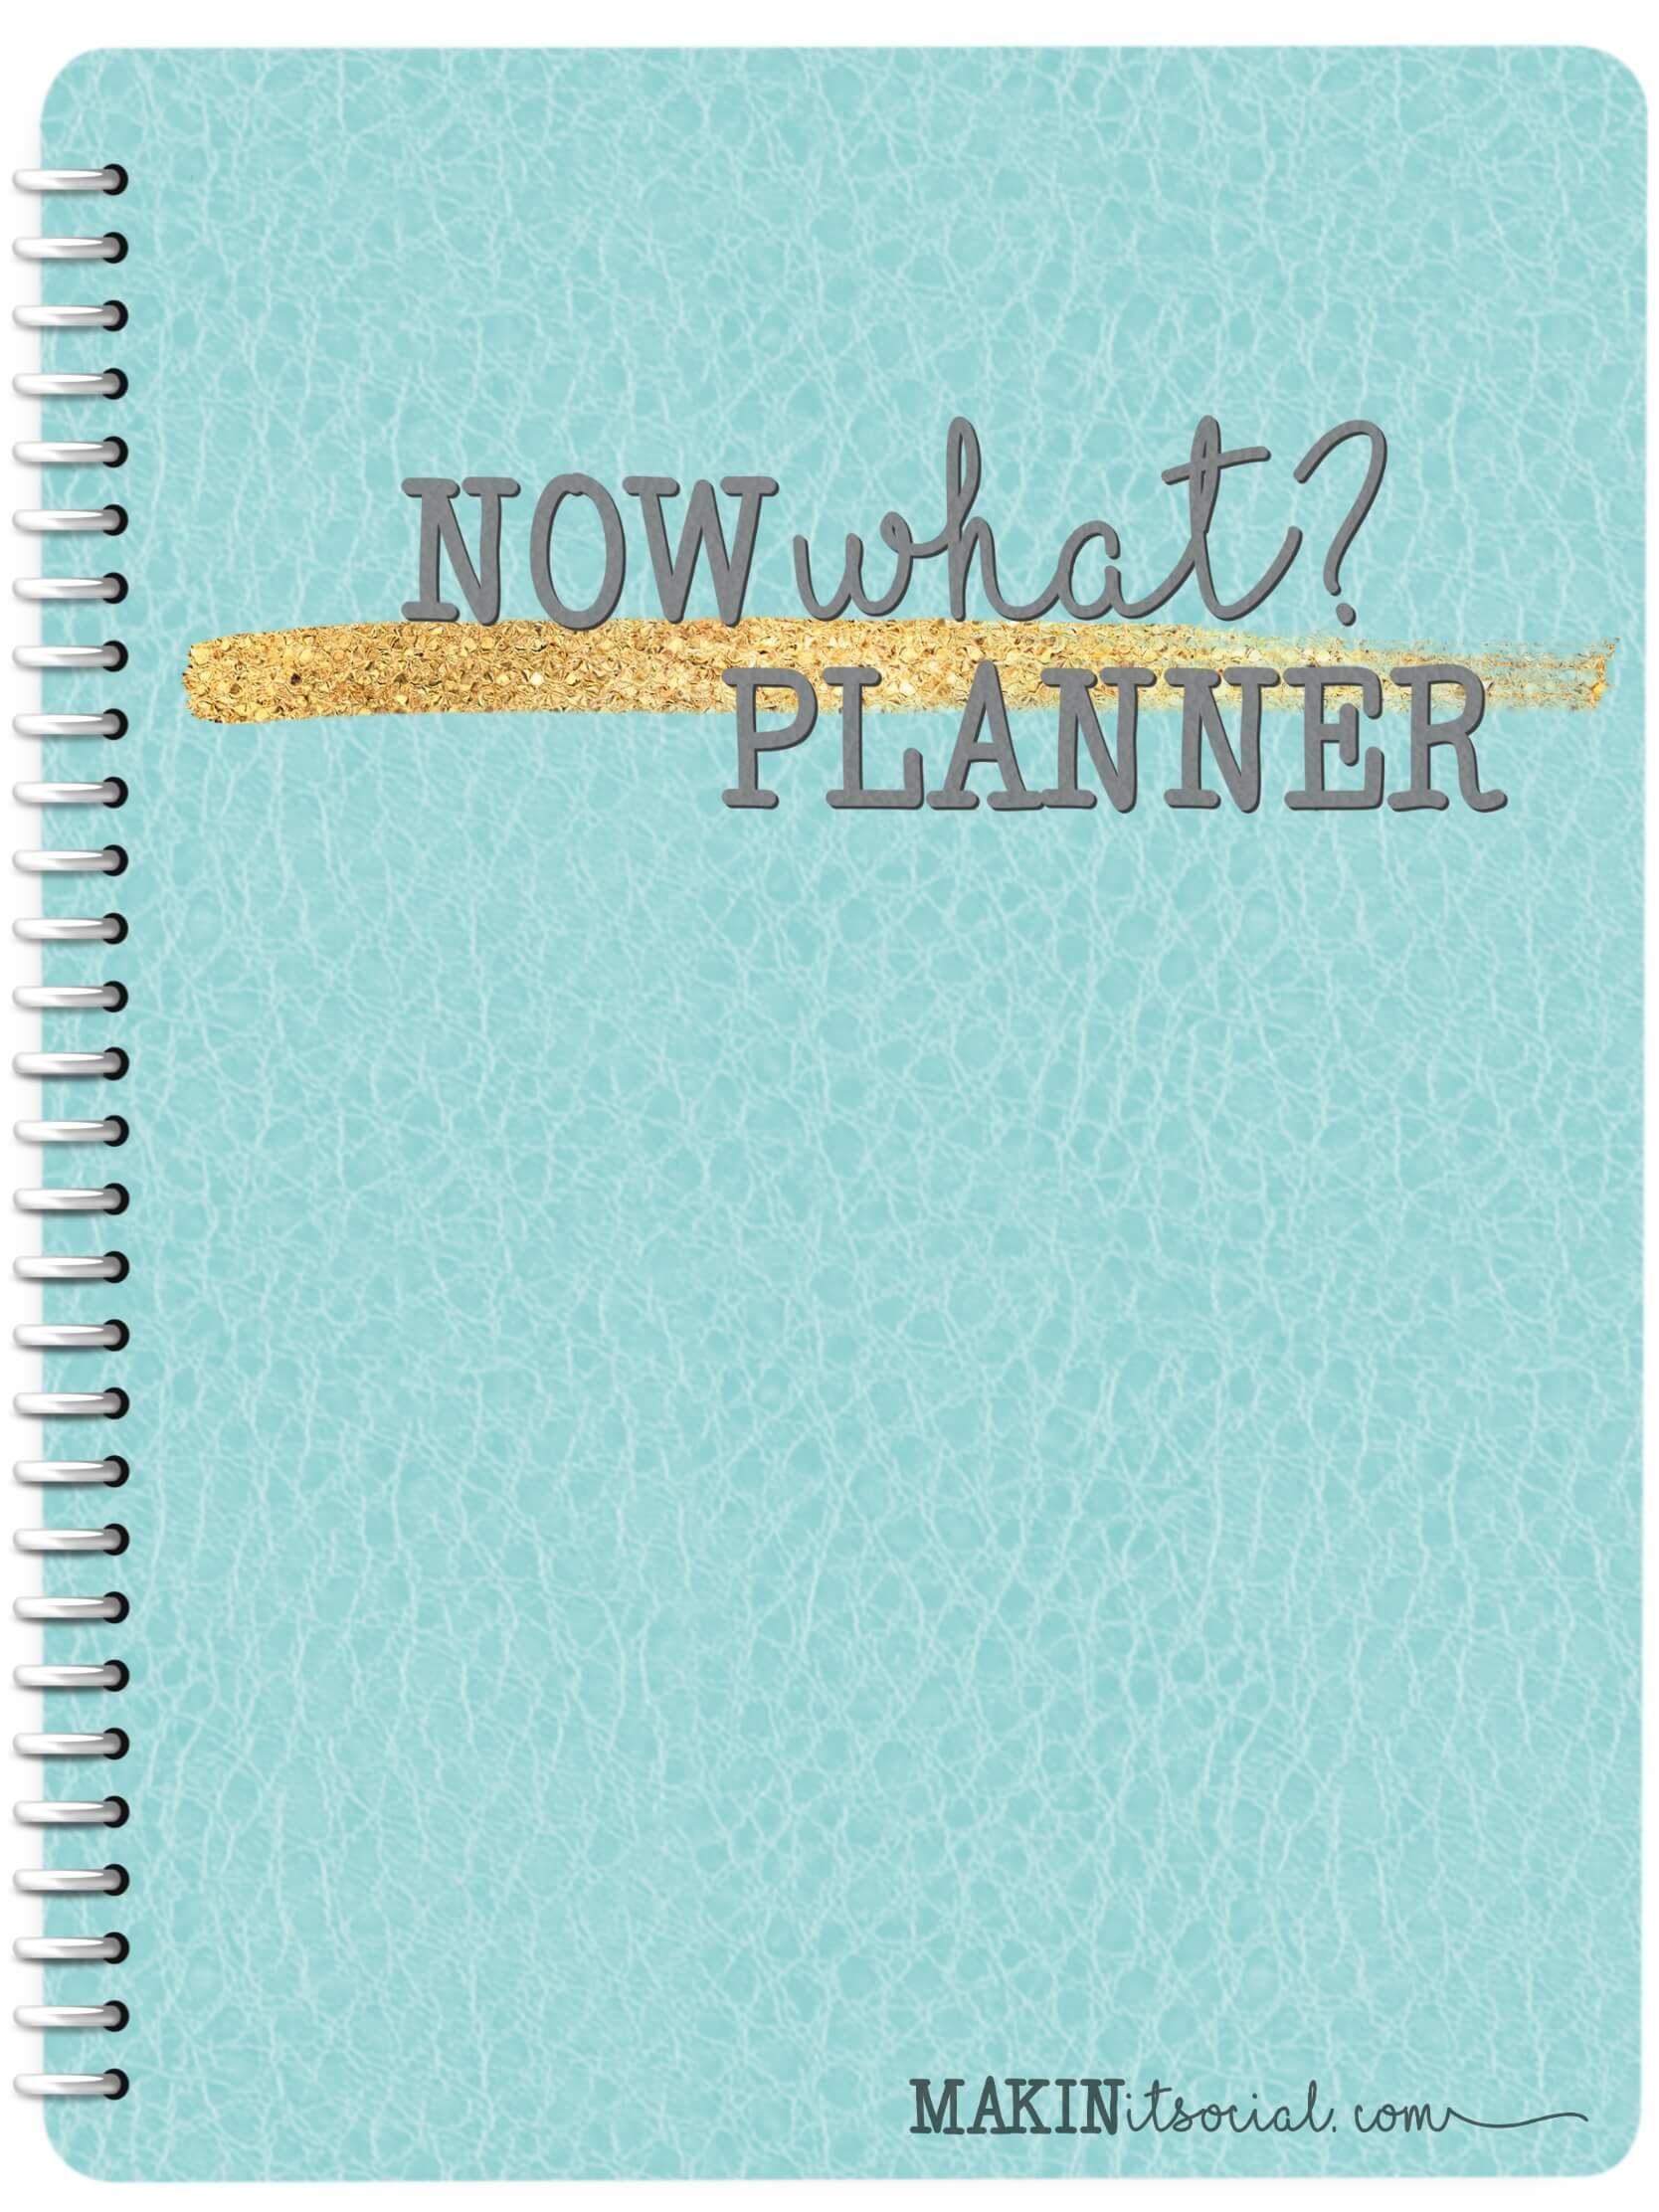 Makin it social Now What Digital Planner Your Ultimate Direct Sales System! Teal Dated